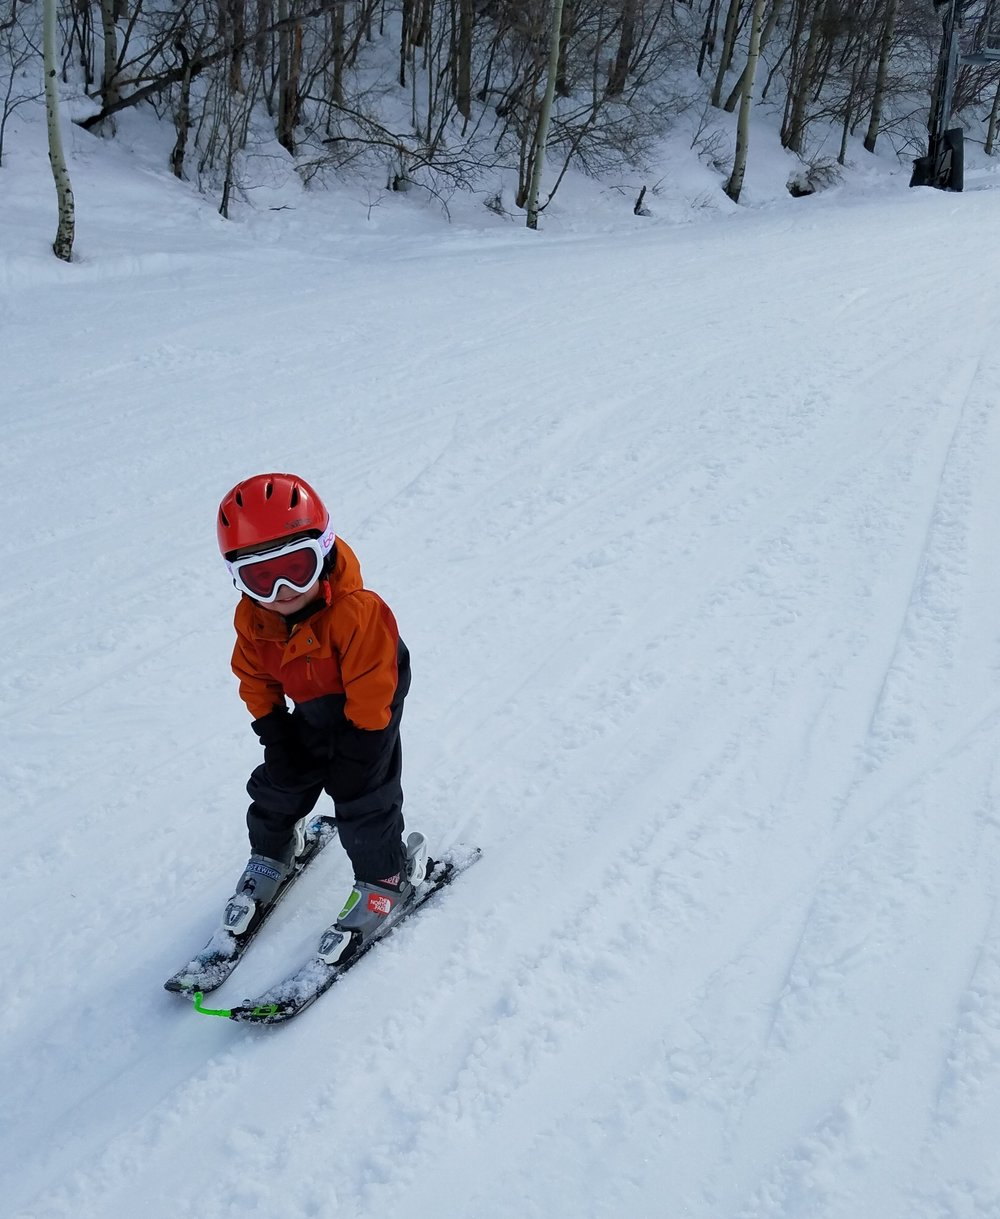 No pictures of me skiing so you get to see my adorable 3 year old rippin it up.